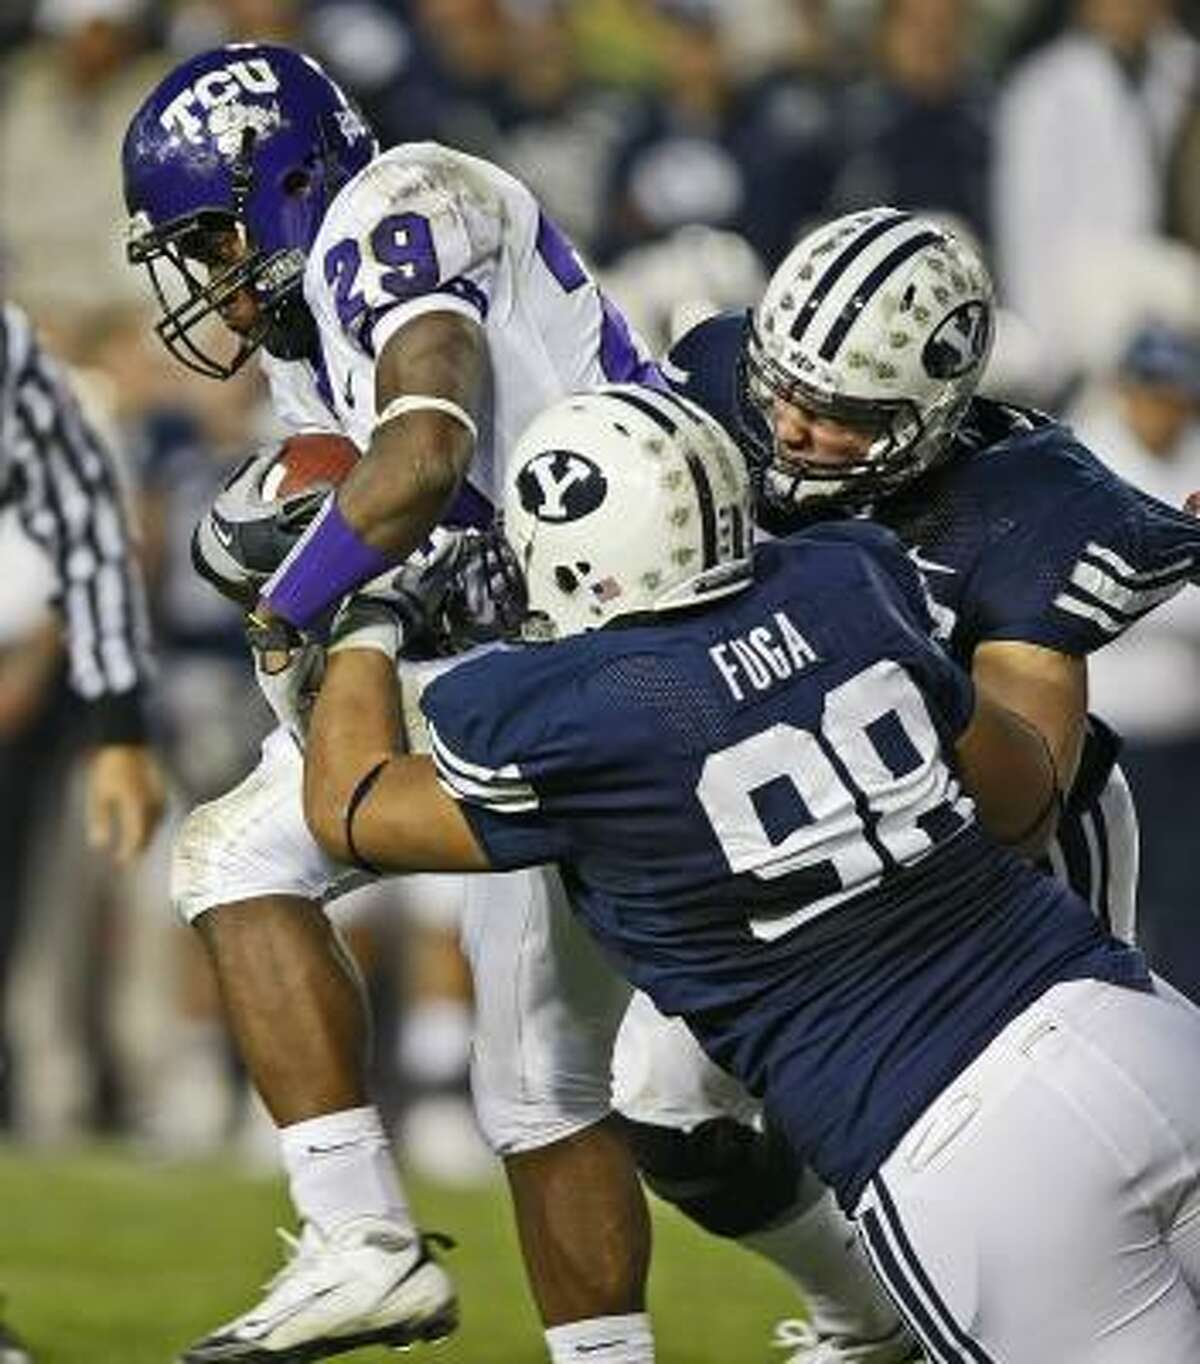 TCU's Matthew Tucker (29) is tackled by BYU's Romney Fuga (98) and Matt Bauman during the first half.